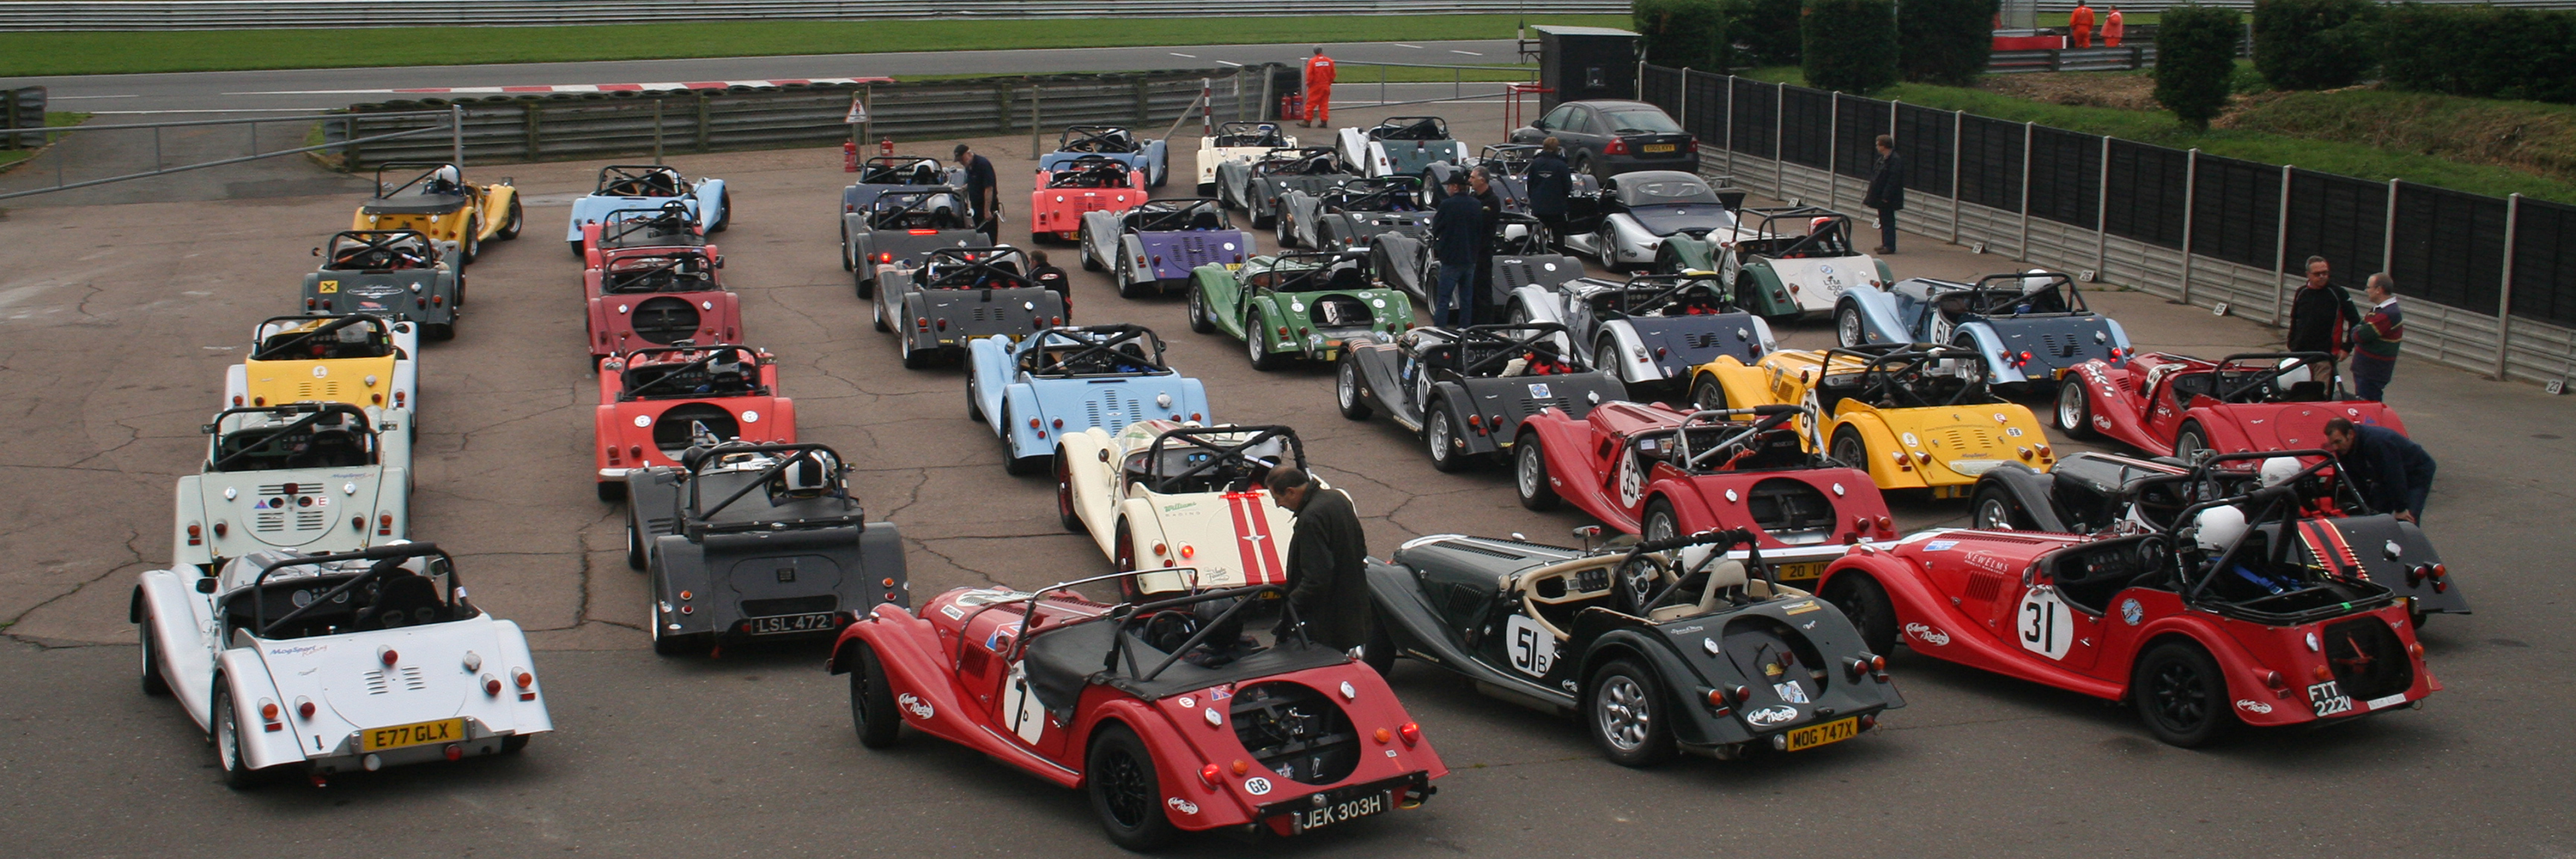 Morgan Challenge competitors in the collecting area at Snetterton